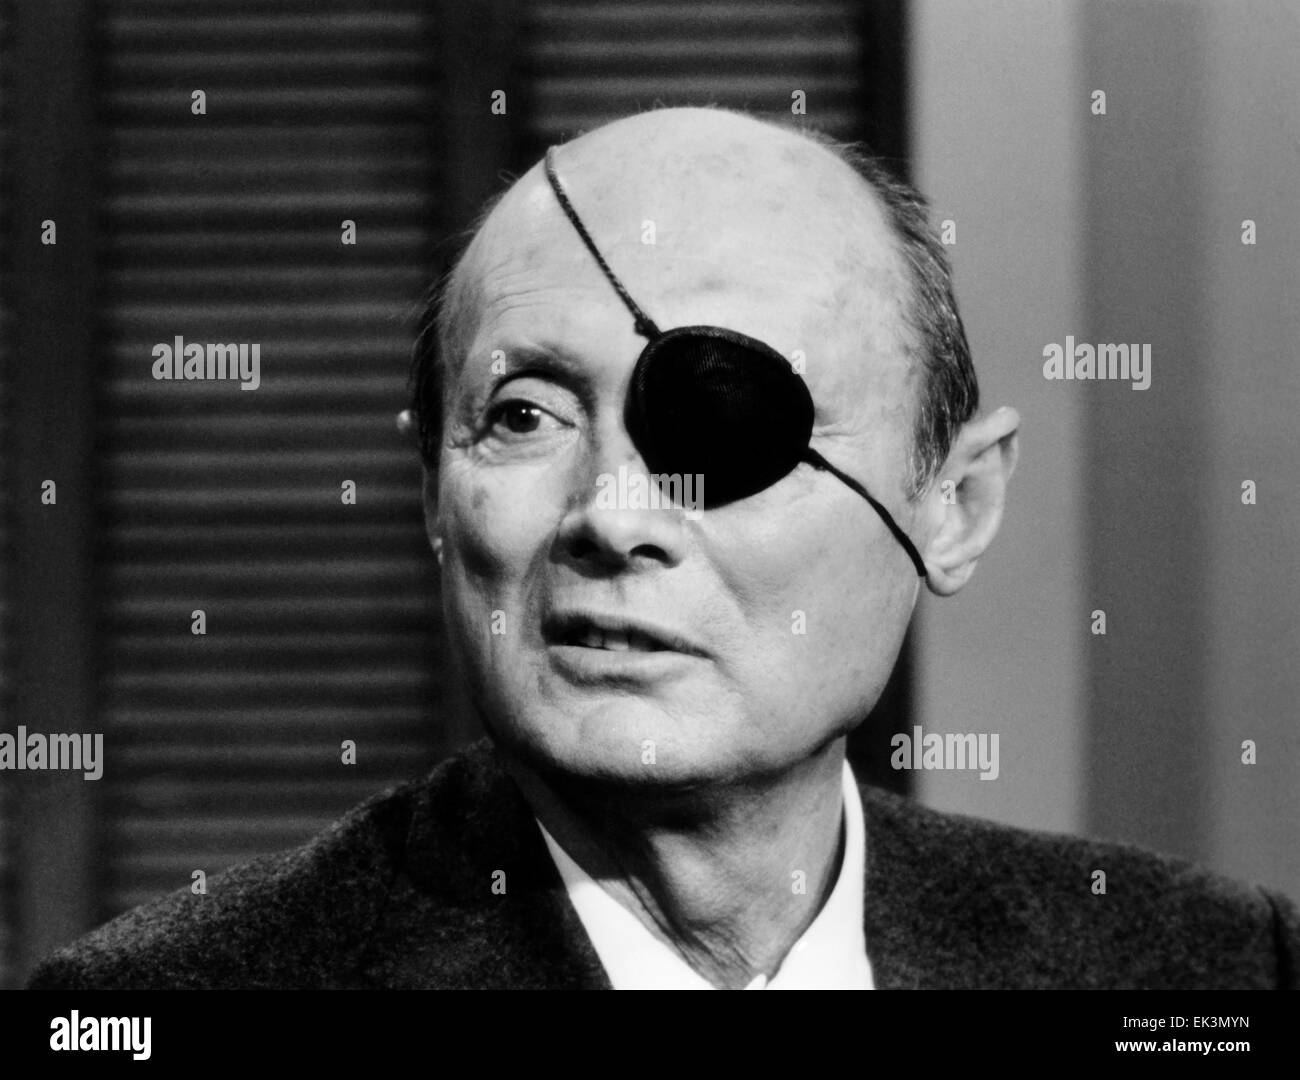 October 16: moshe dayan | jewish currents archive.